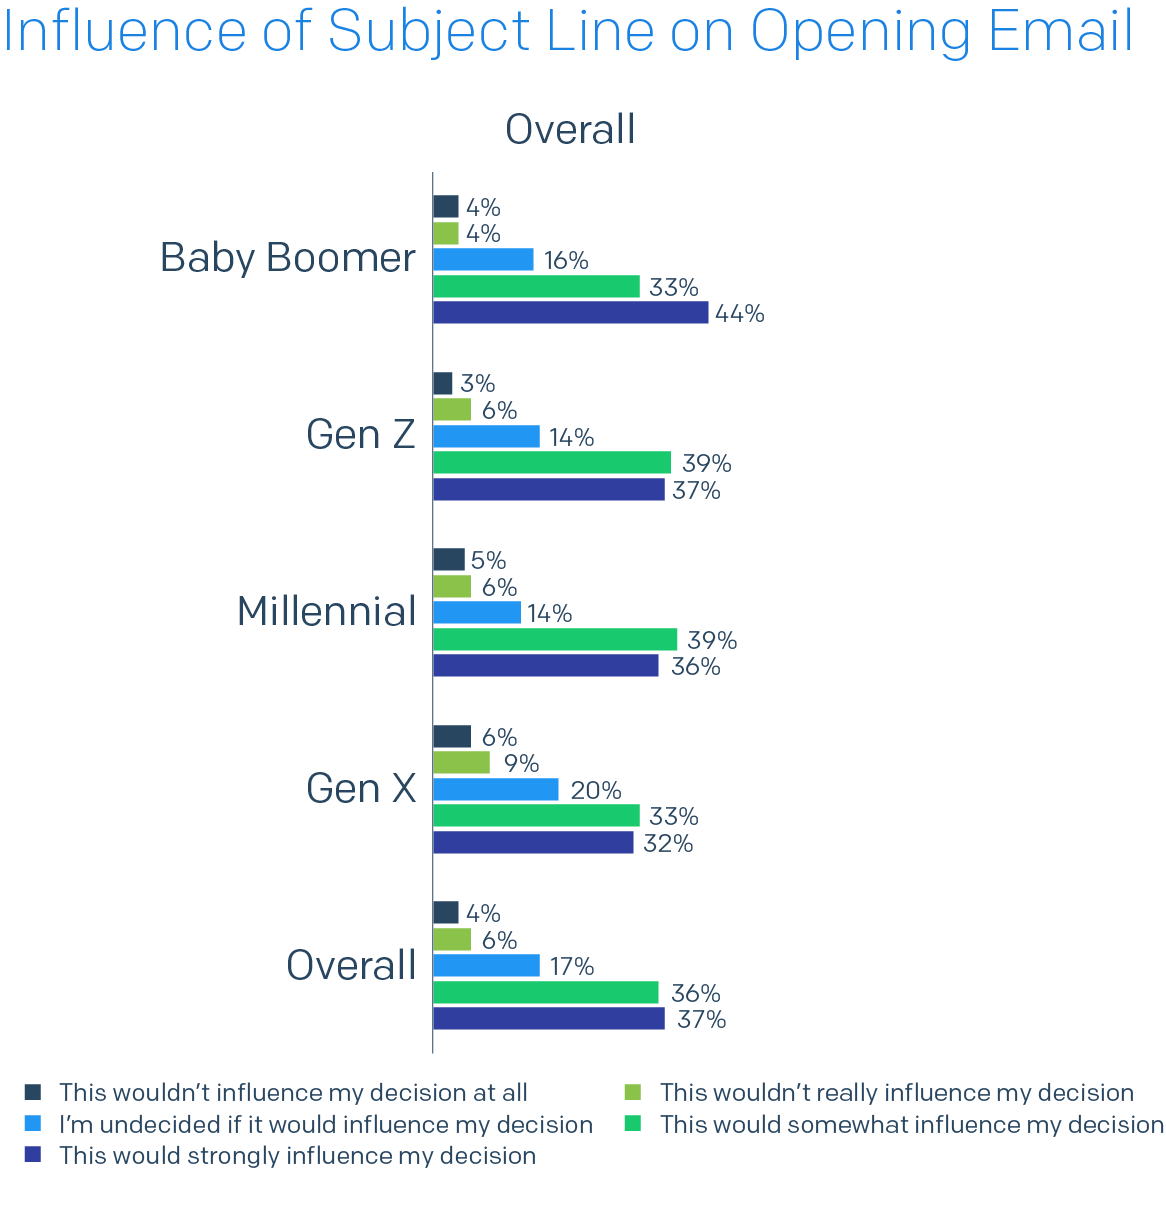 Bar chart of Influence of Subject Line on Opening Email